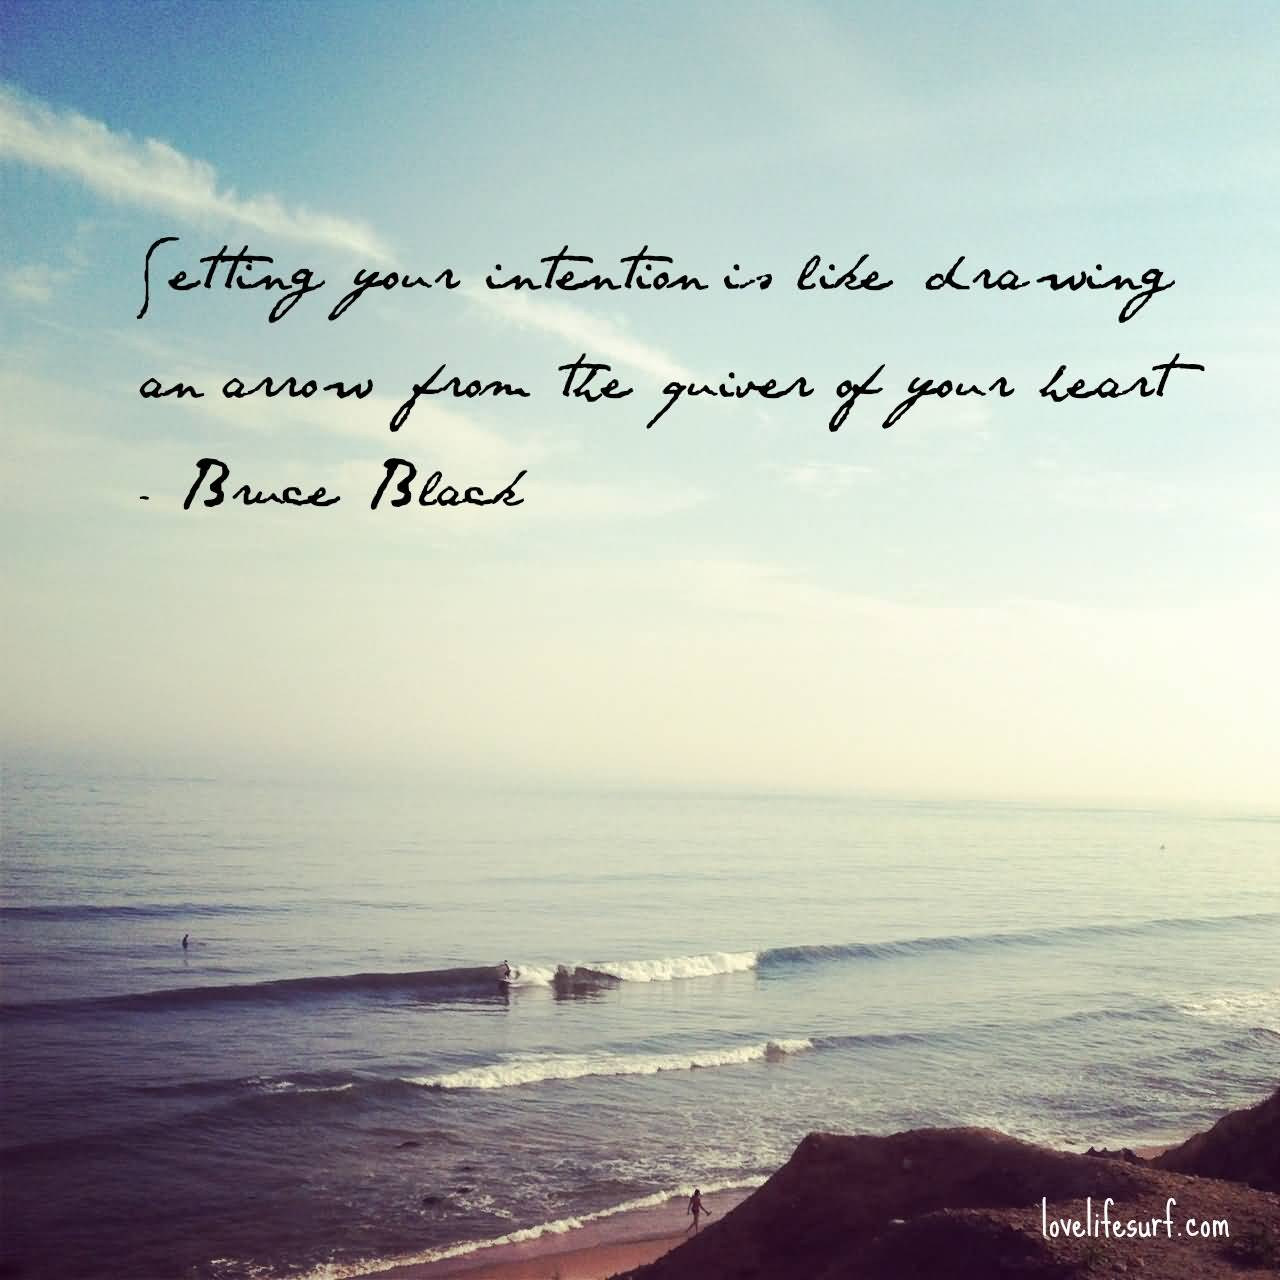 Setting your intention is like drawing an arrow from the quiver of your heart. Bruce Black